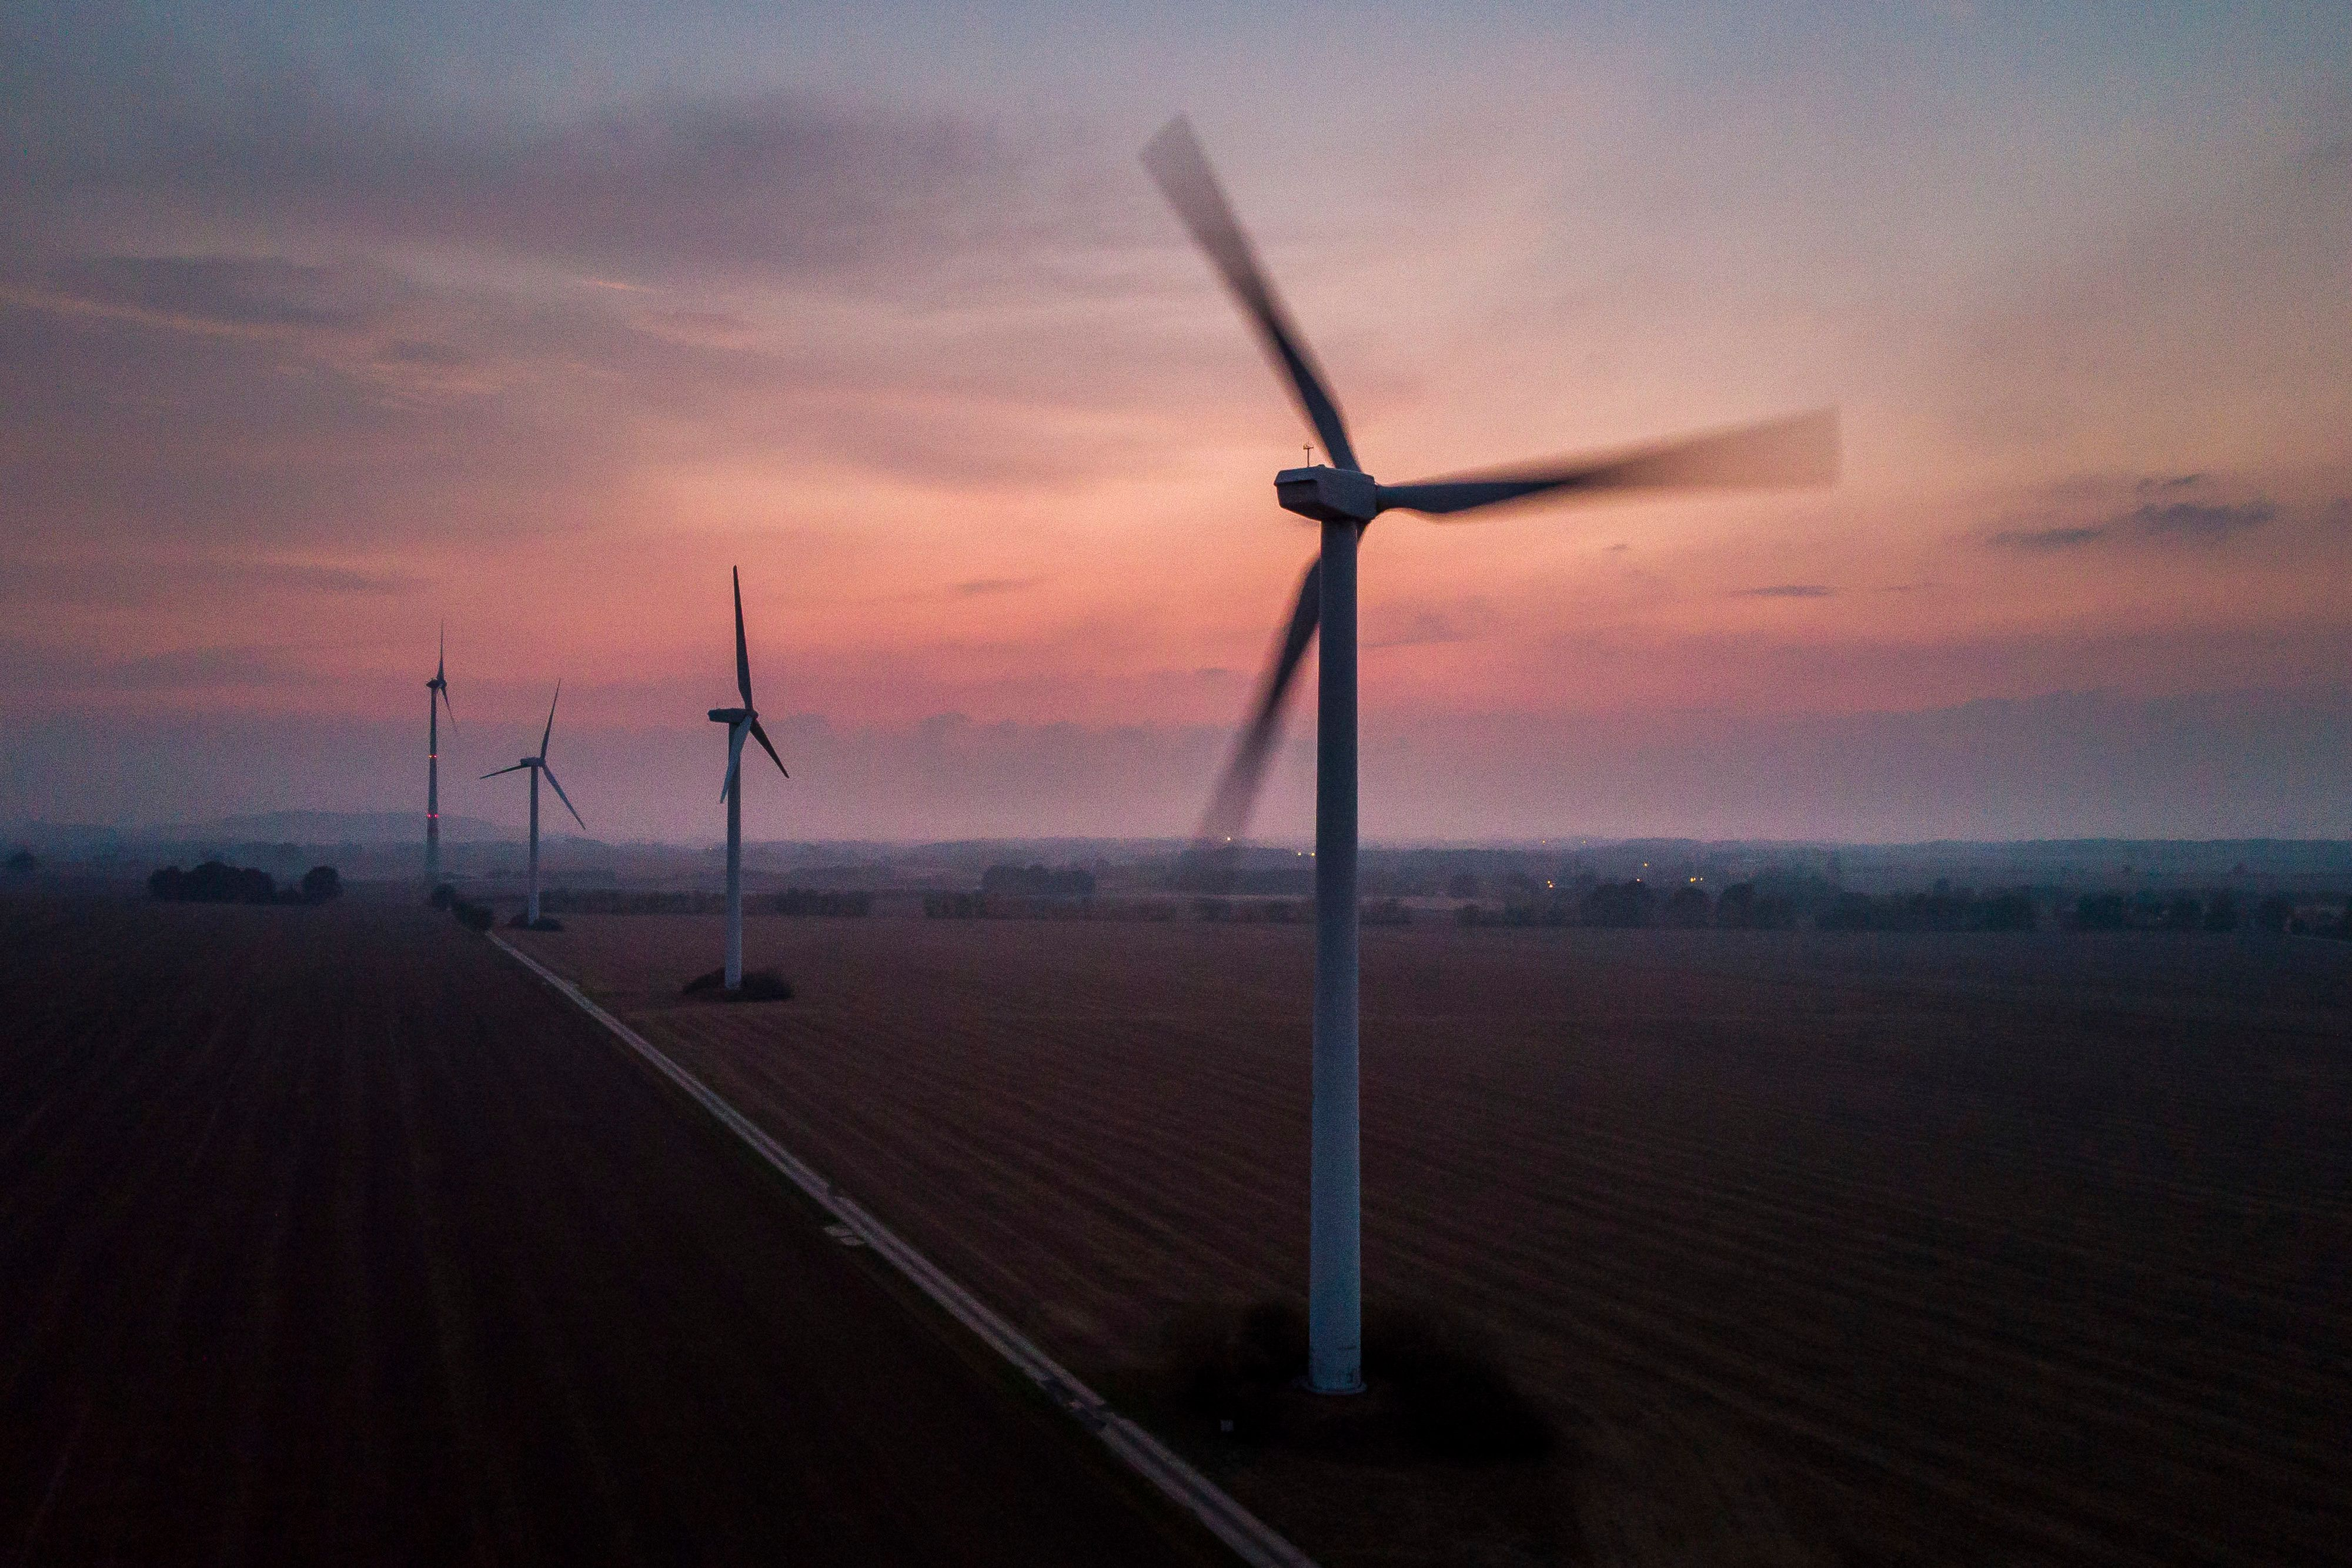 MELAUNE, GERMANY - SEPTEMBER 02: Aerial view to wind turbines during evening light on September 02, 2018 in Melaune, Germany. (Photo by Florian Gaertner/Photothek via Getty Images)